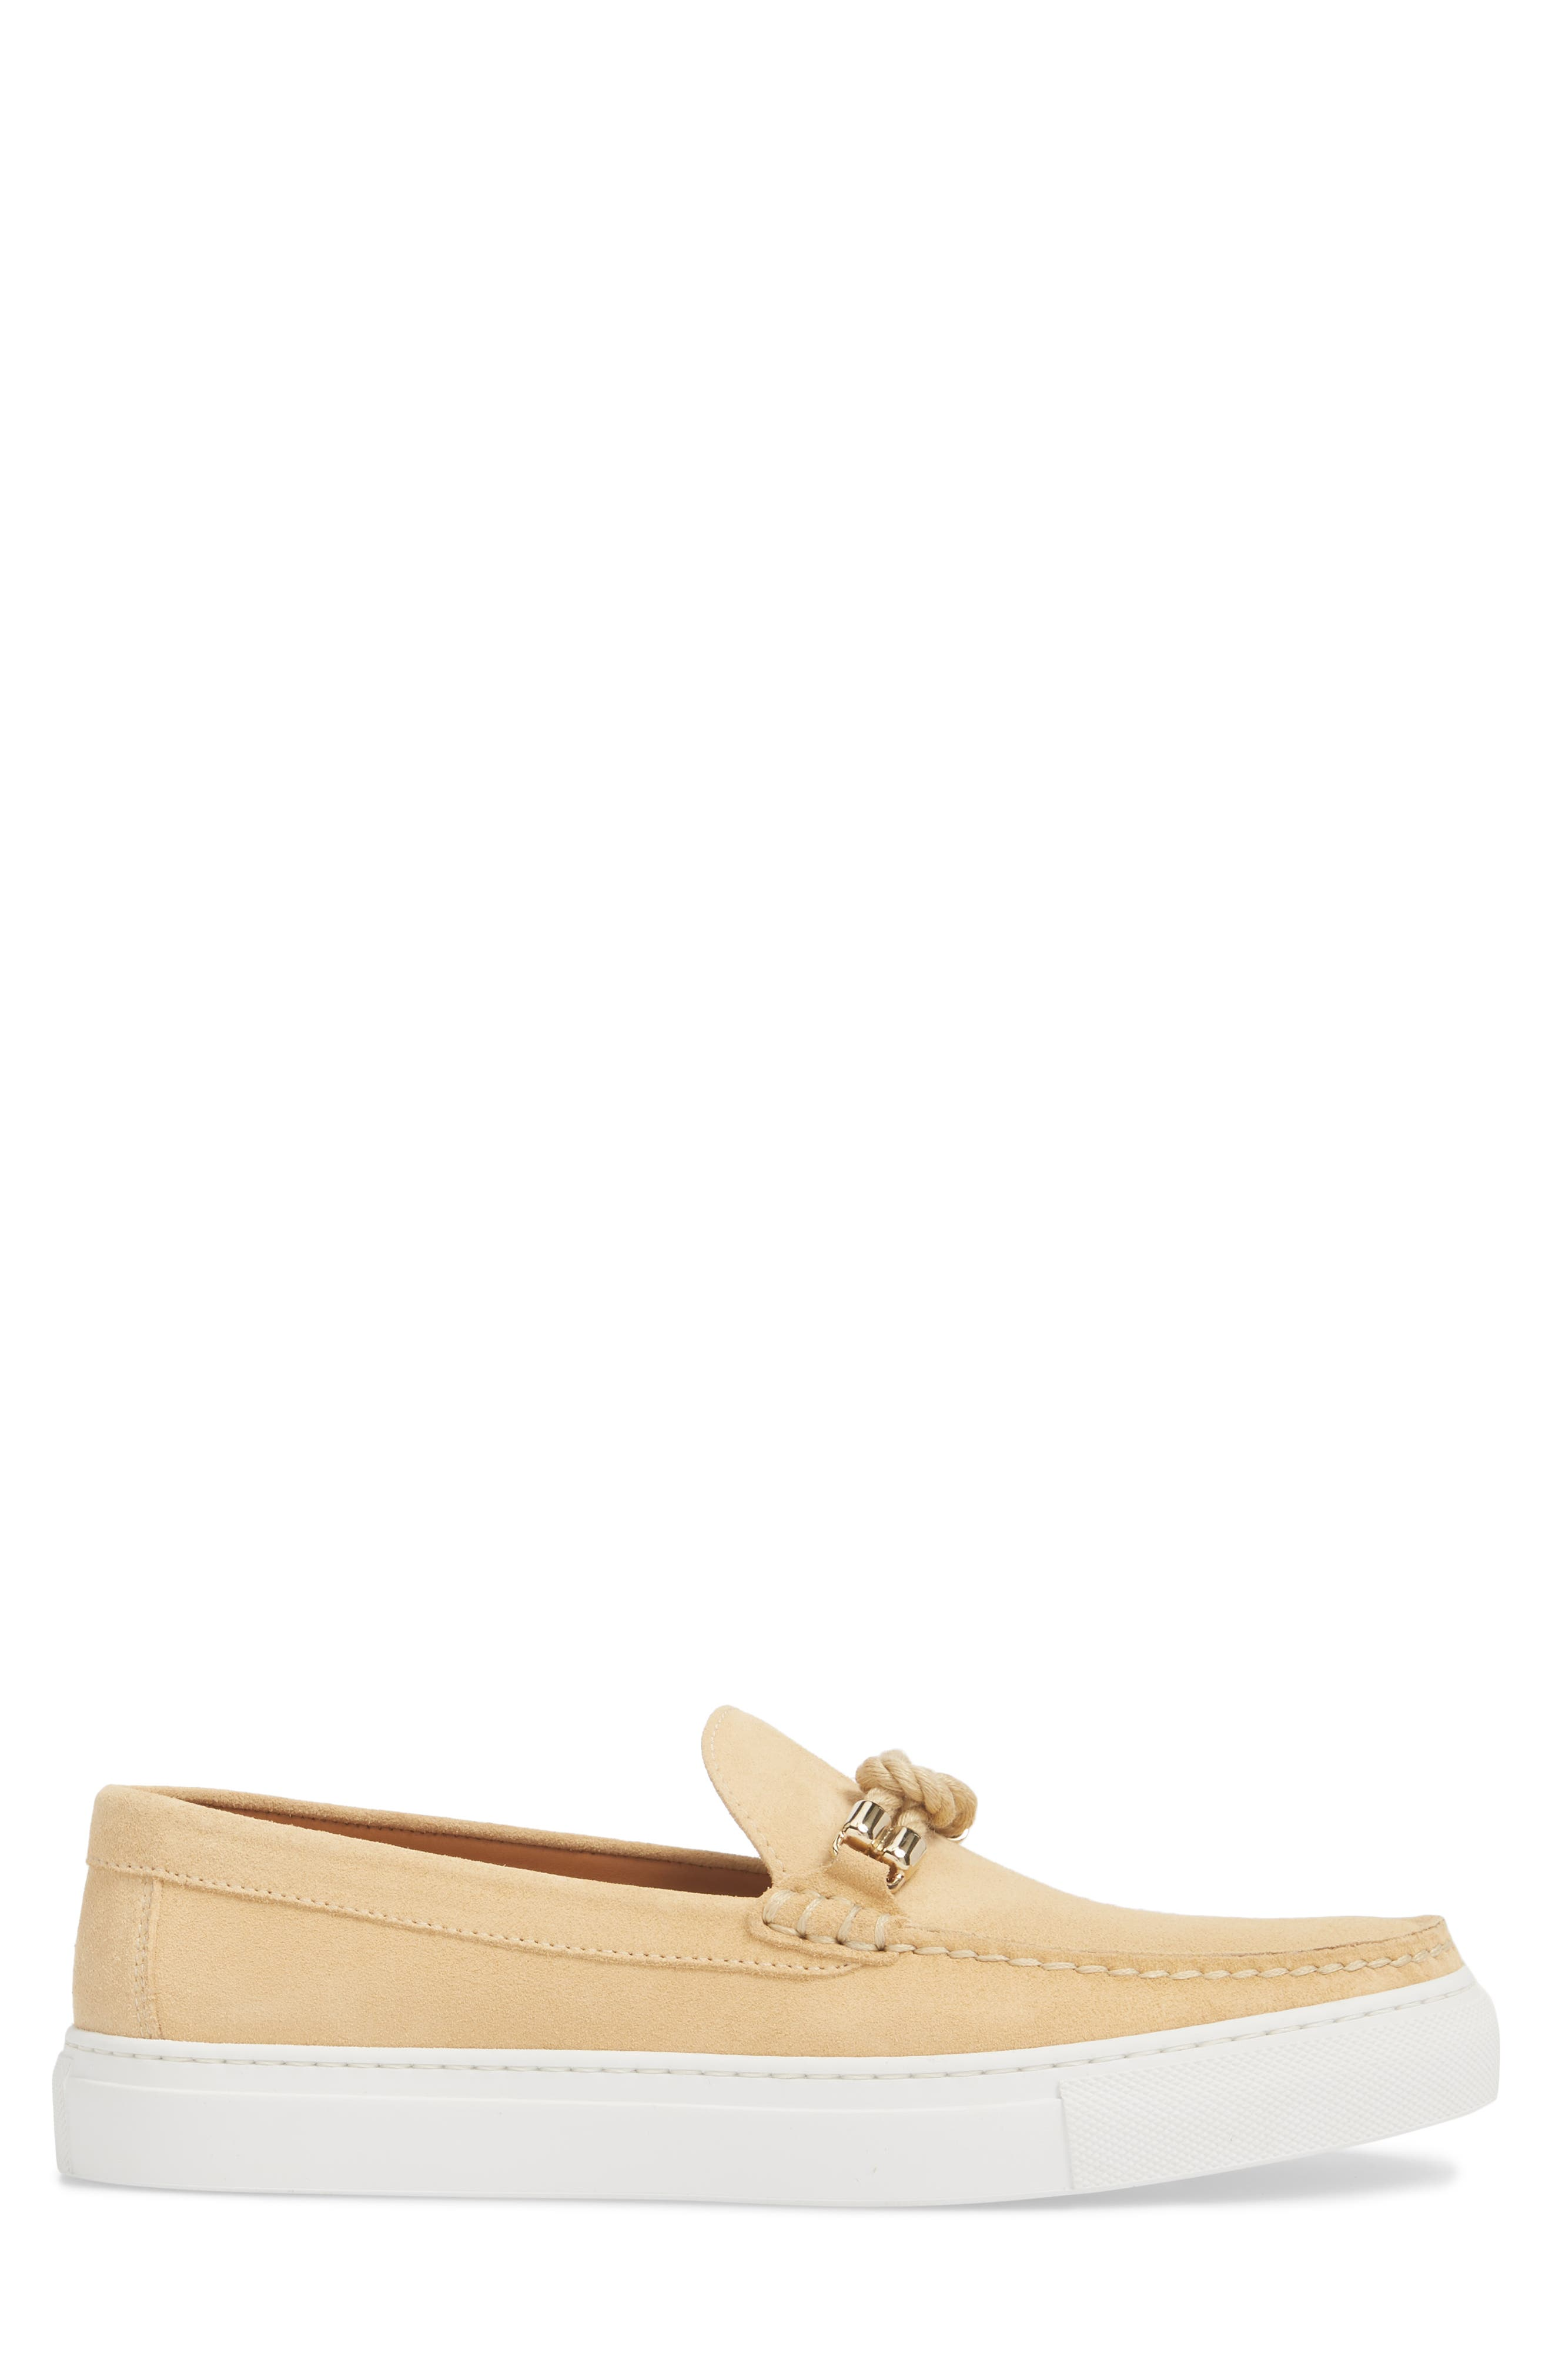 Bitton Square Knot Loafer,                             Alternate thumbnail 3, color,                             Beige Suede